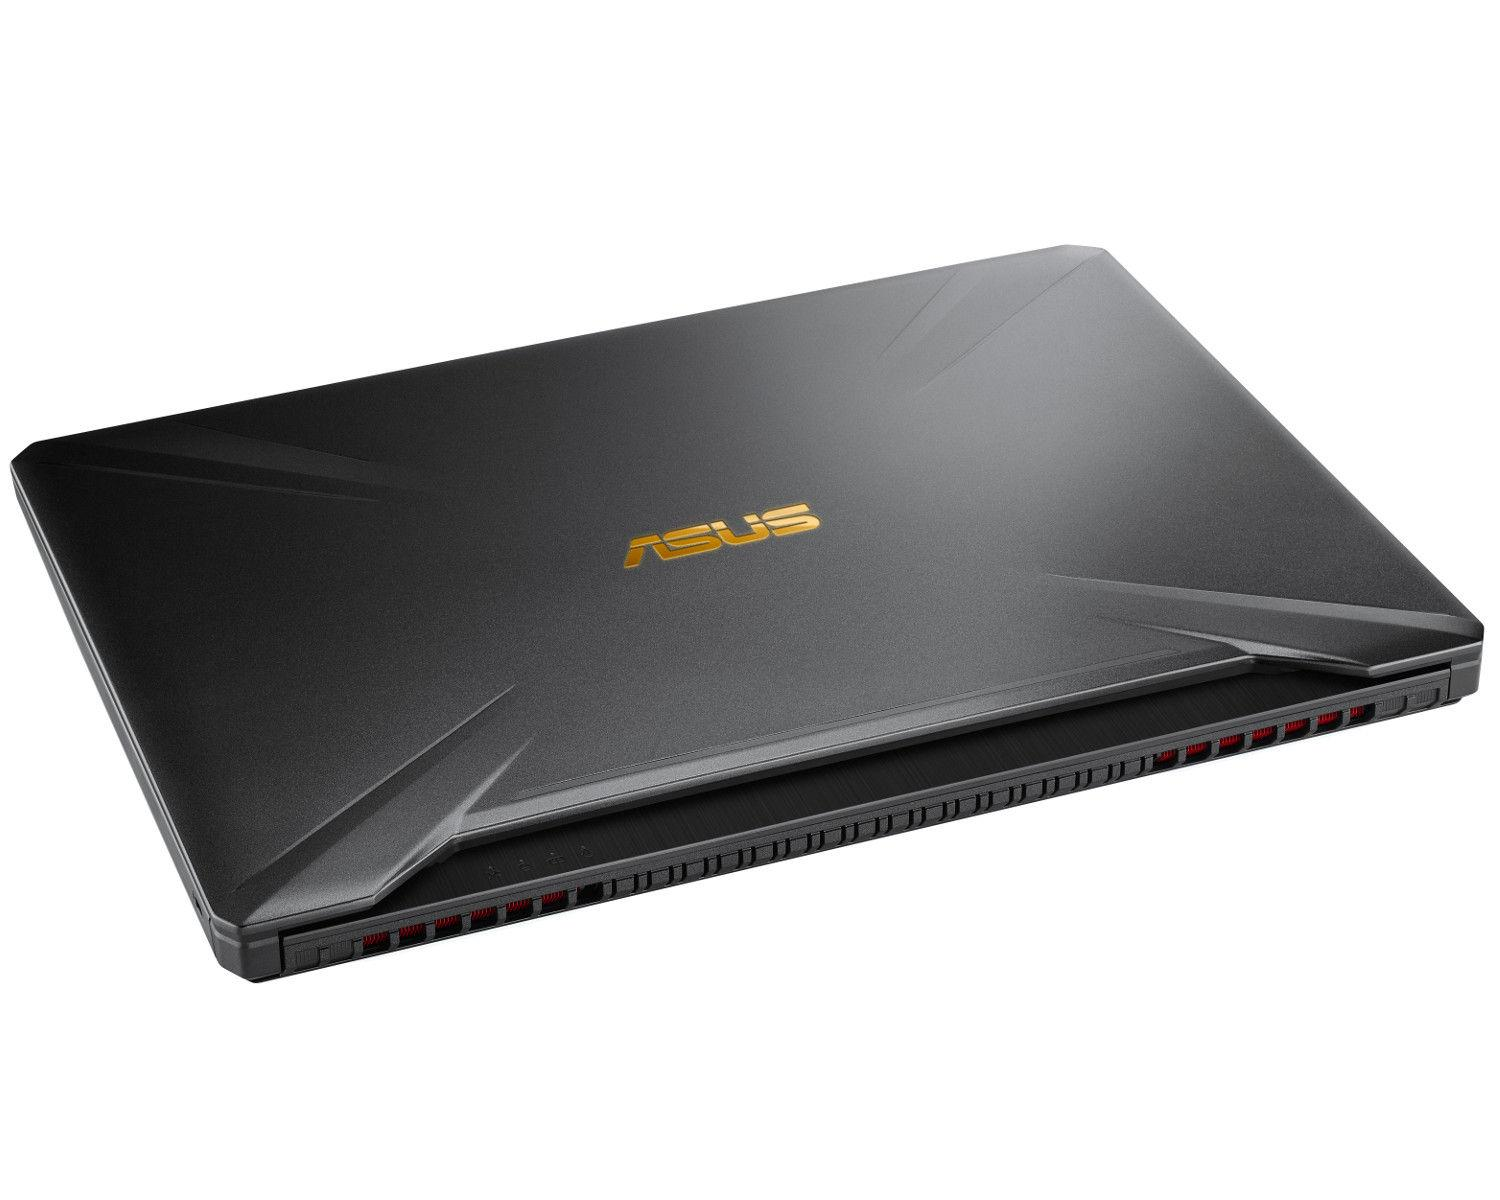 Ordinateur portable Asus TUF 565GE-AL352 Noir/Gold - IPS 120Hz, GTX 1050 Ti, Sans Windows - photo 7